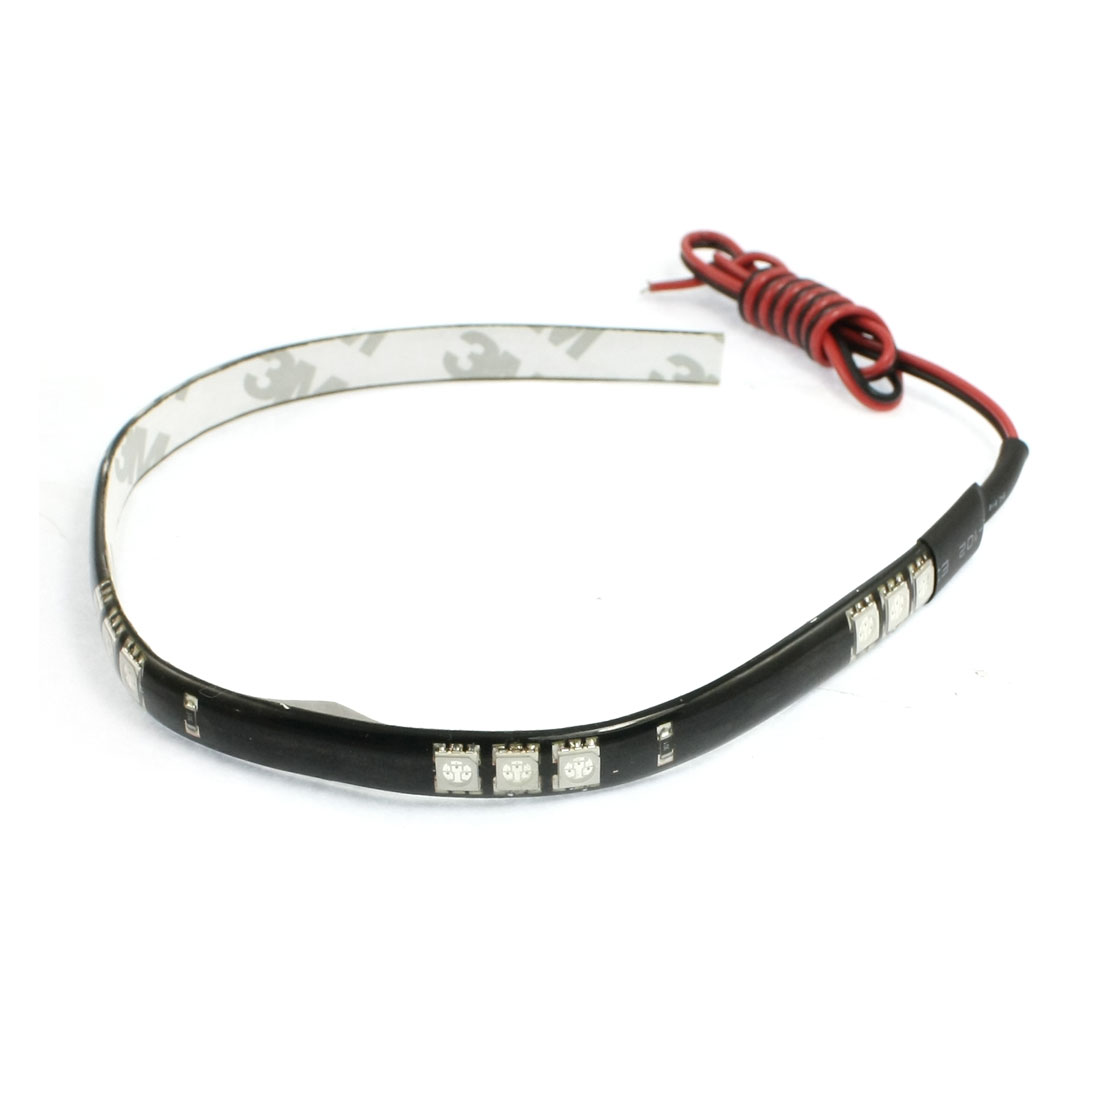 Red 15 LED 5050 SMD Adhesive Car Truck Flexible Waterproof Light Strip 11.8""